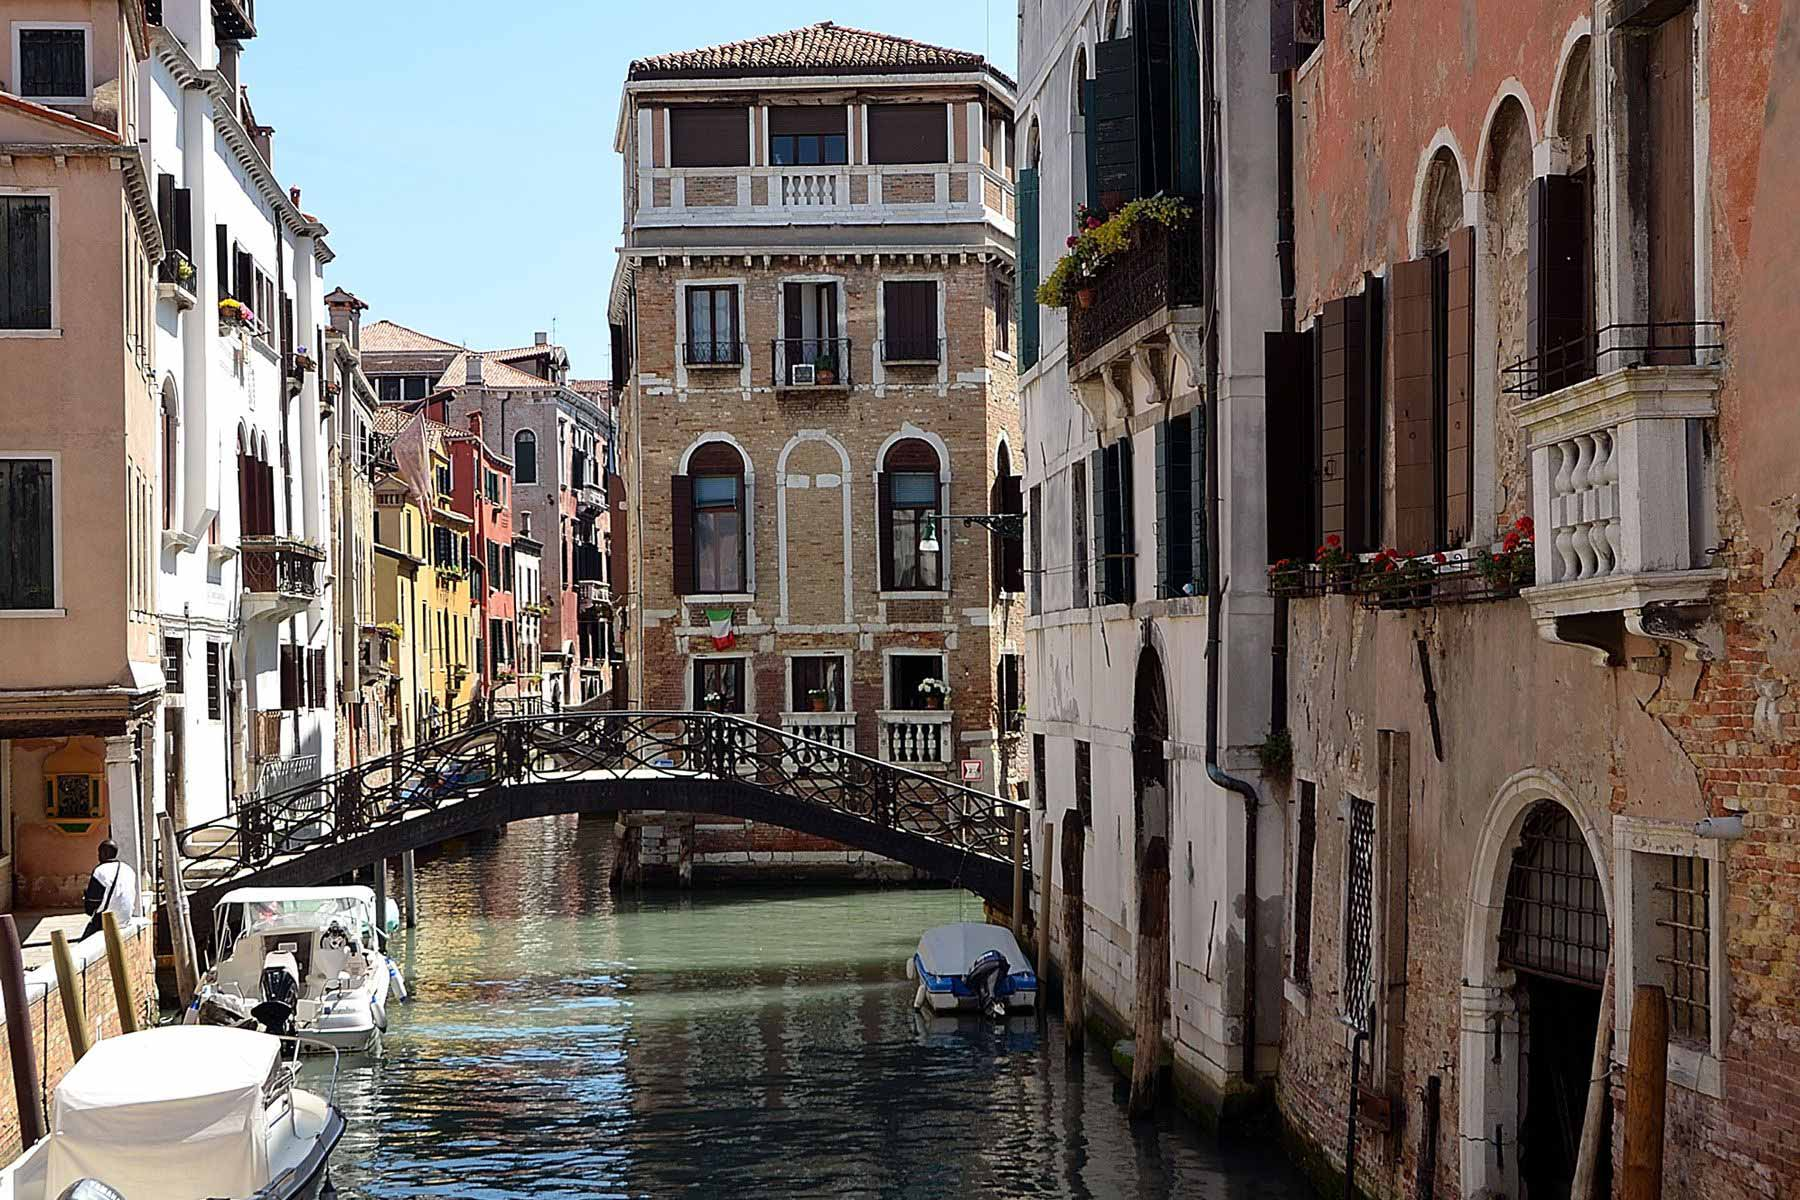 A typical Venetian bridge